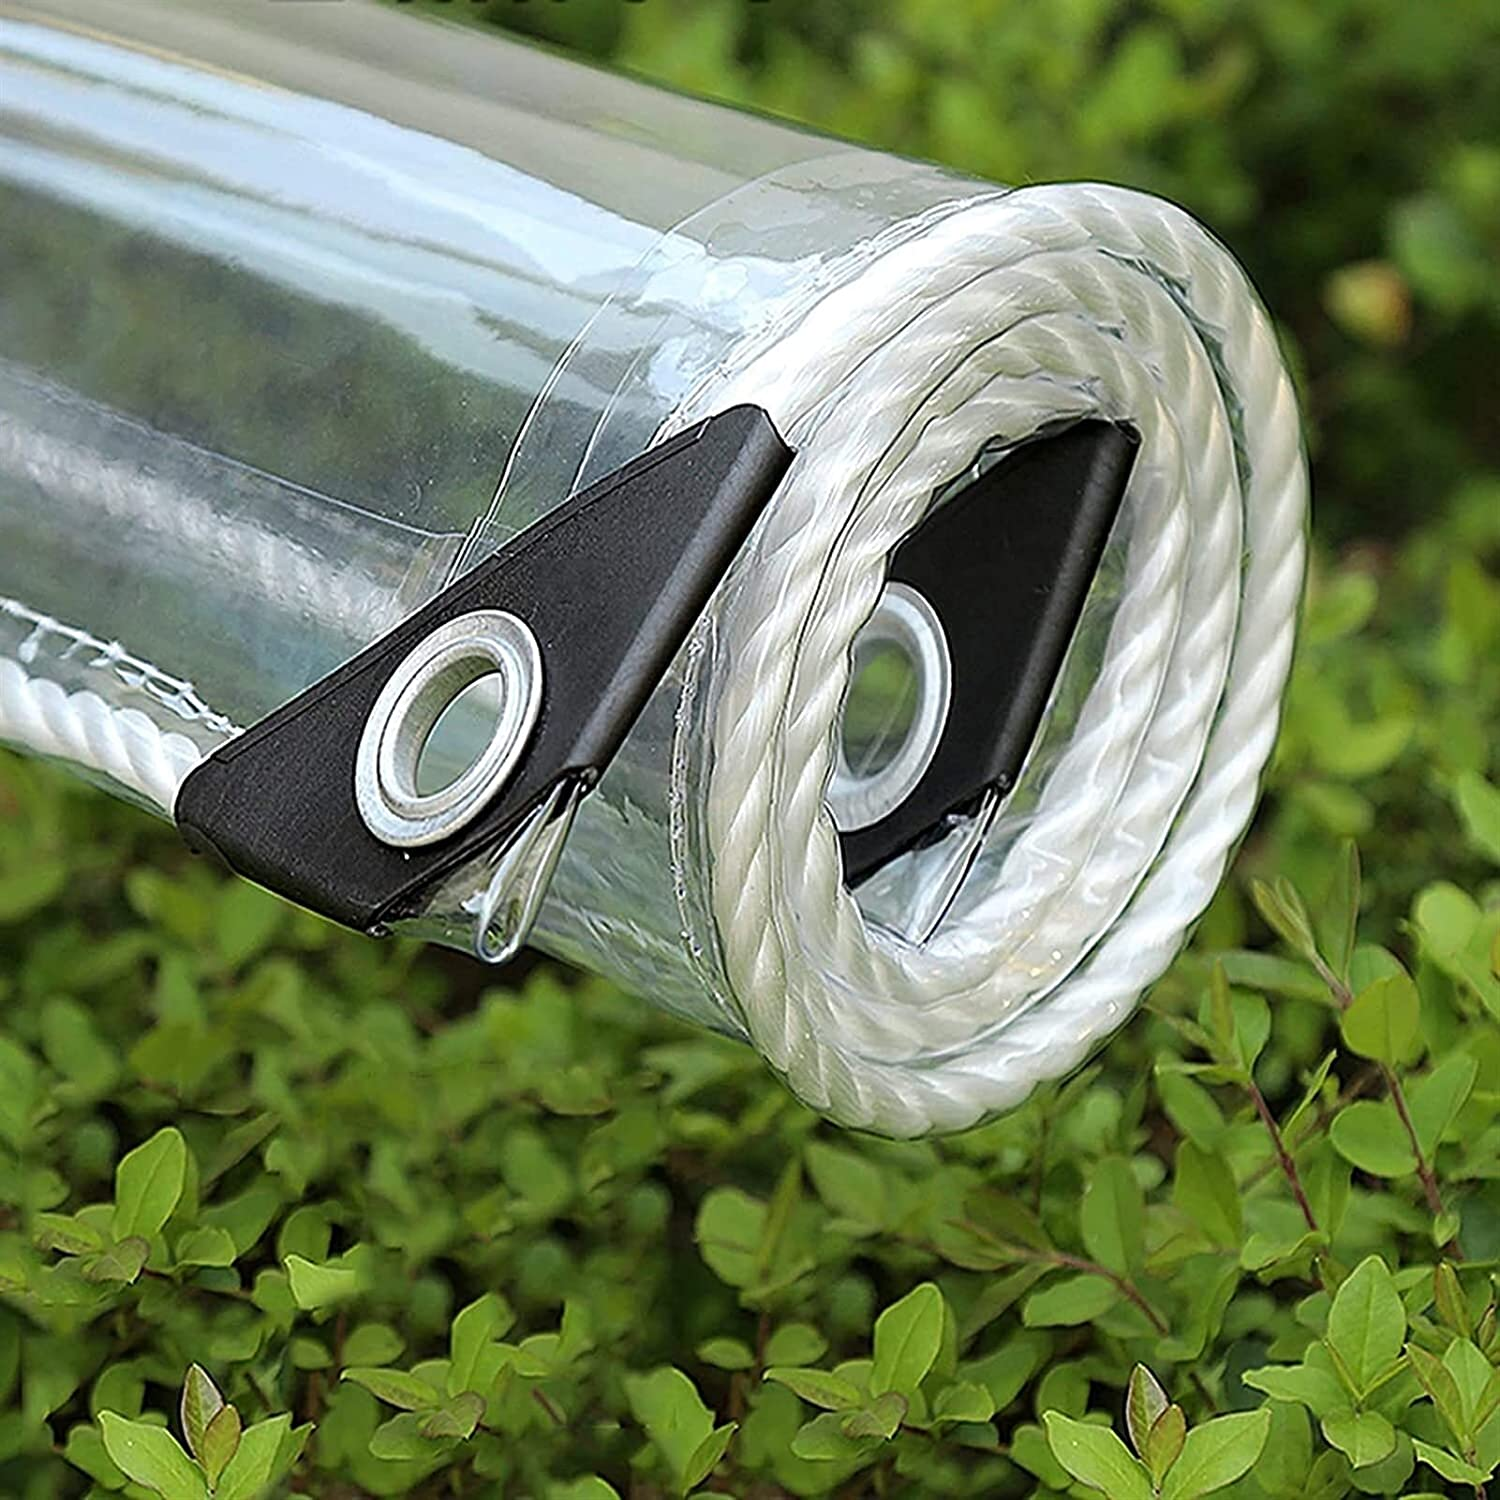 Special Campaign Waterproof Transparent PVC Tarpaulin Eyelets Max 79% OFF T Weatherproof with